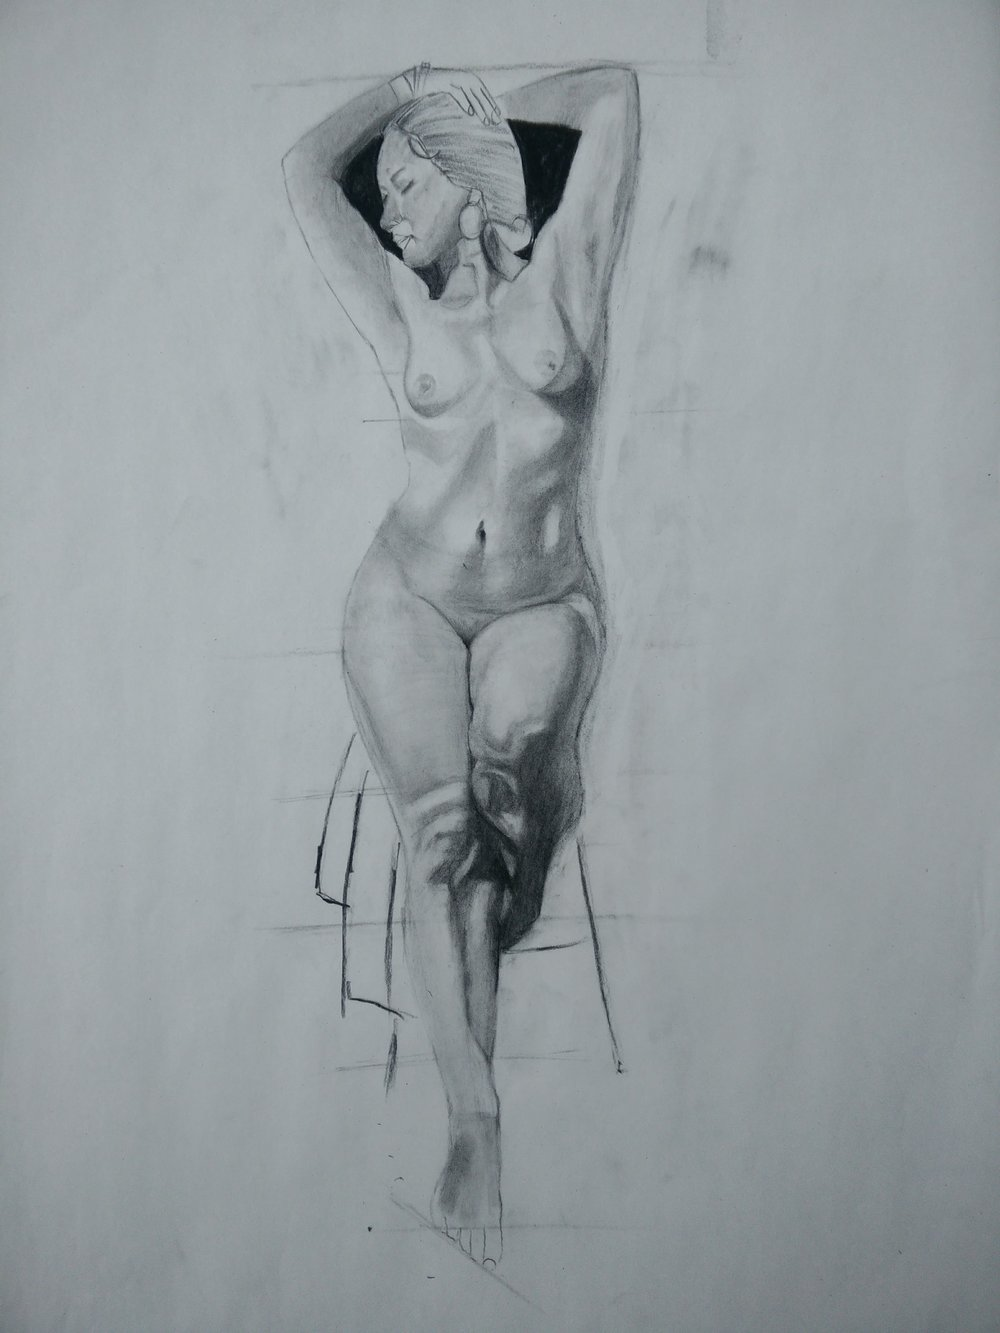 Art of Drawing Figures: - Thursdays, 6:00 pm to 7:00 pmExperience drawing the human figure with the guidance of a skilled artist. This course is about drawing lifelike drawing of male and female body with charcoal. In this course you will learn sketching of the nude body structures - both male and female - in a simple and effective way through step by step teaching mechanism. The learners are surely going to enjoy geometry behind the human anatomy, and get benefitted from this course.  The materials used to create the artwork are compressed and vine charcoal, eraser, kneaded eraser, sharpener, Art paper. No live models. Instructor will use digital images and live recoded models for a reference drawings. Level: BeginnerSupplies: All supplies included.